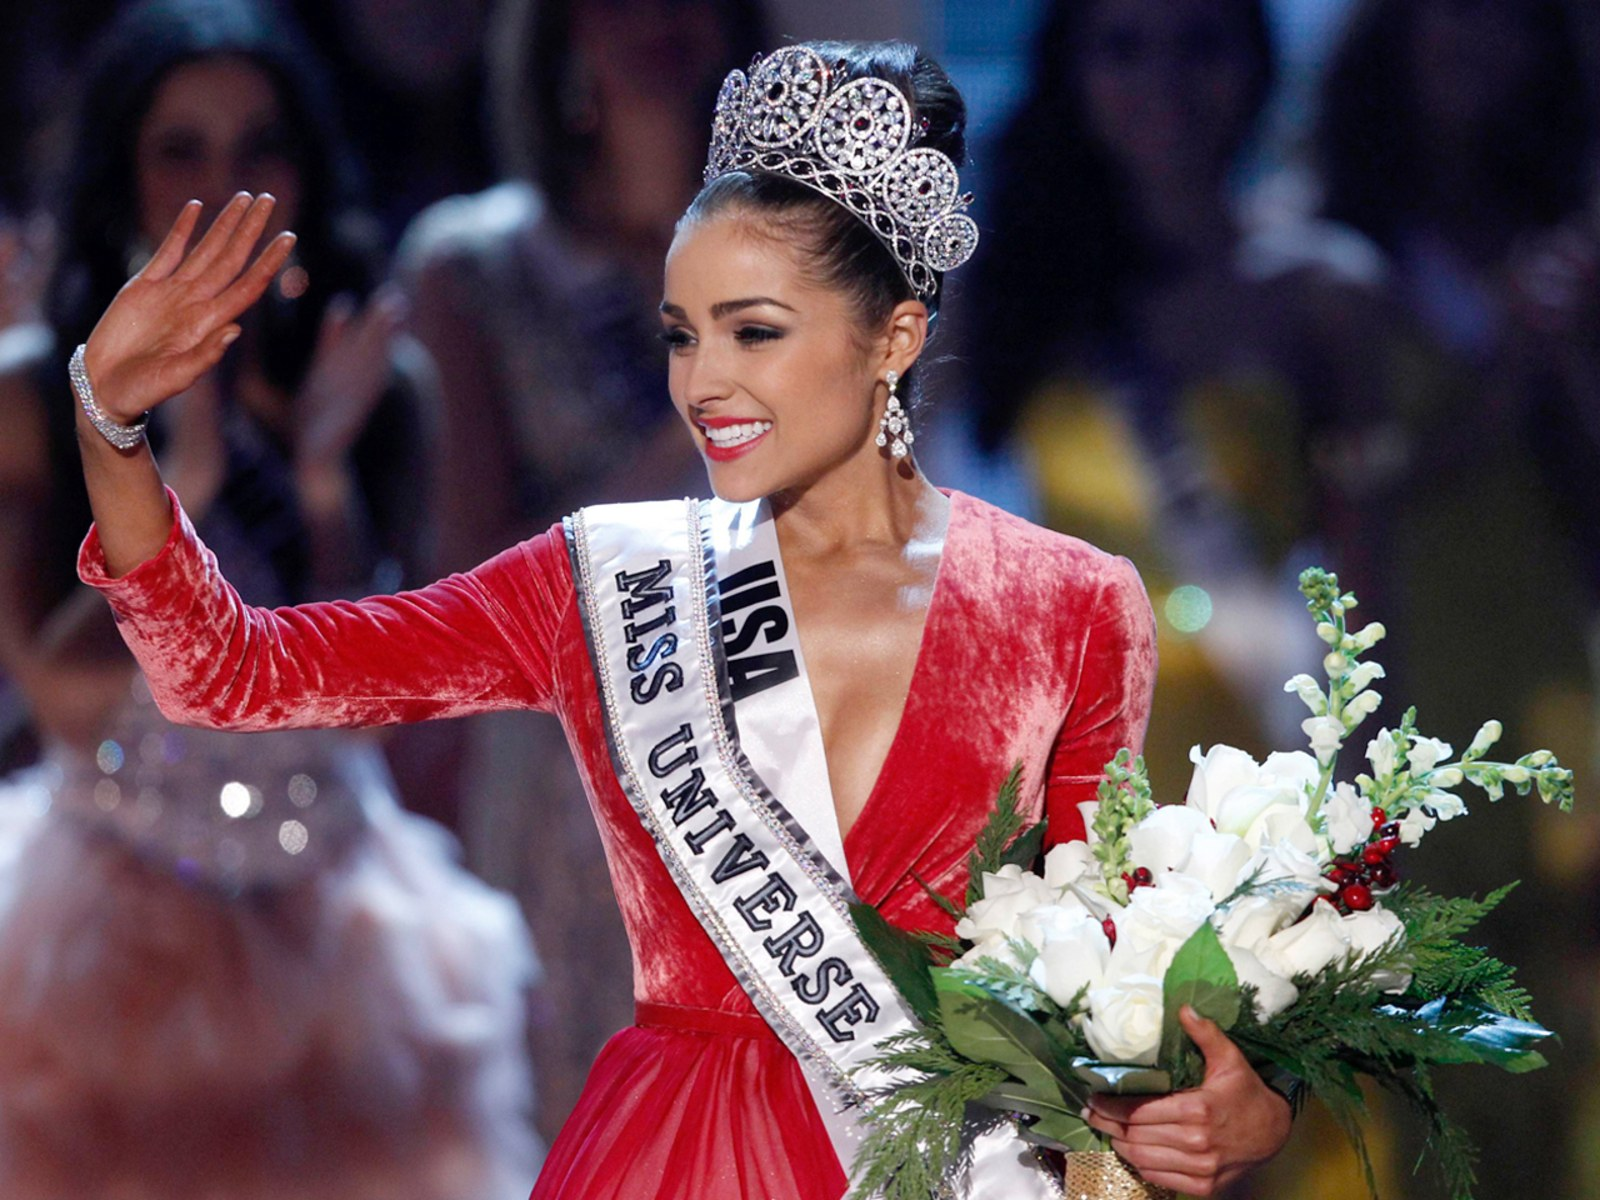 Image: Miss USA Culpo waves after being crowned during the Miss Universe pageant in Las Vegas